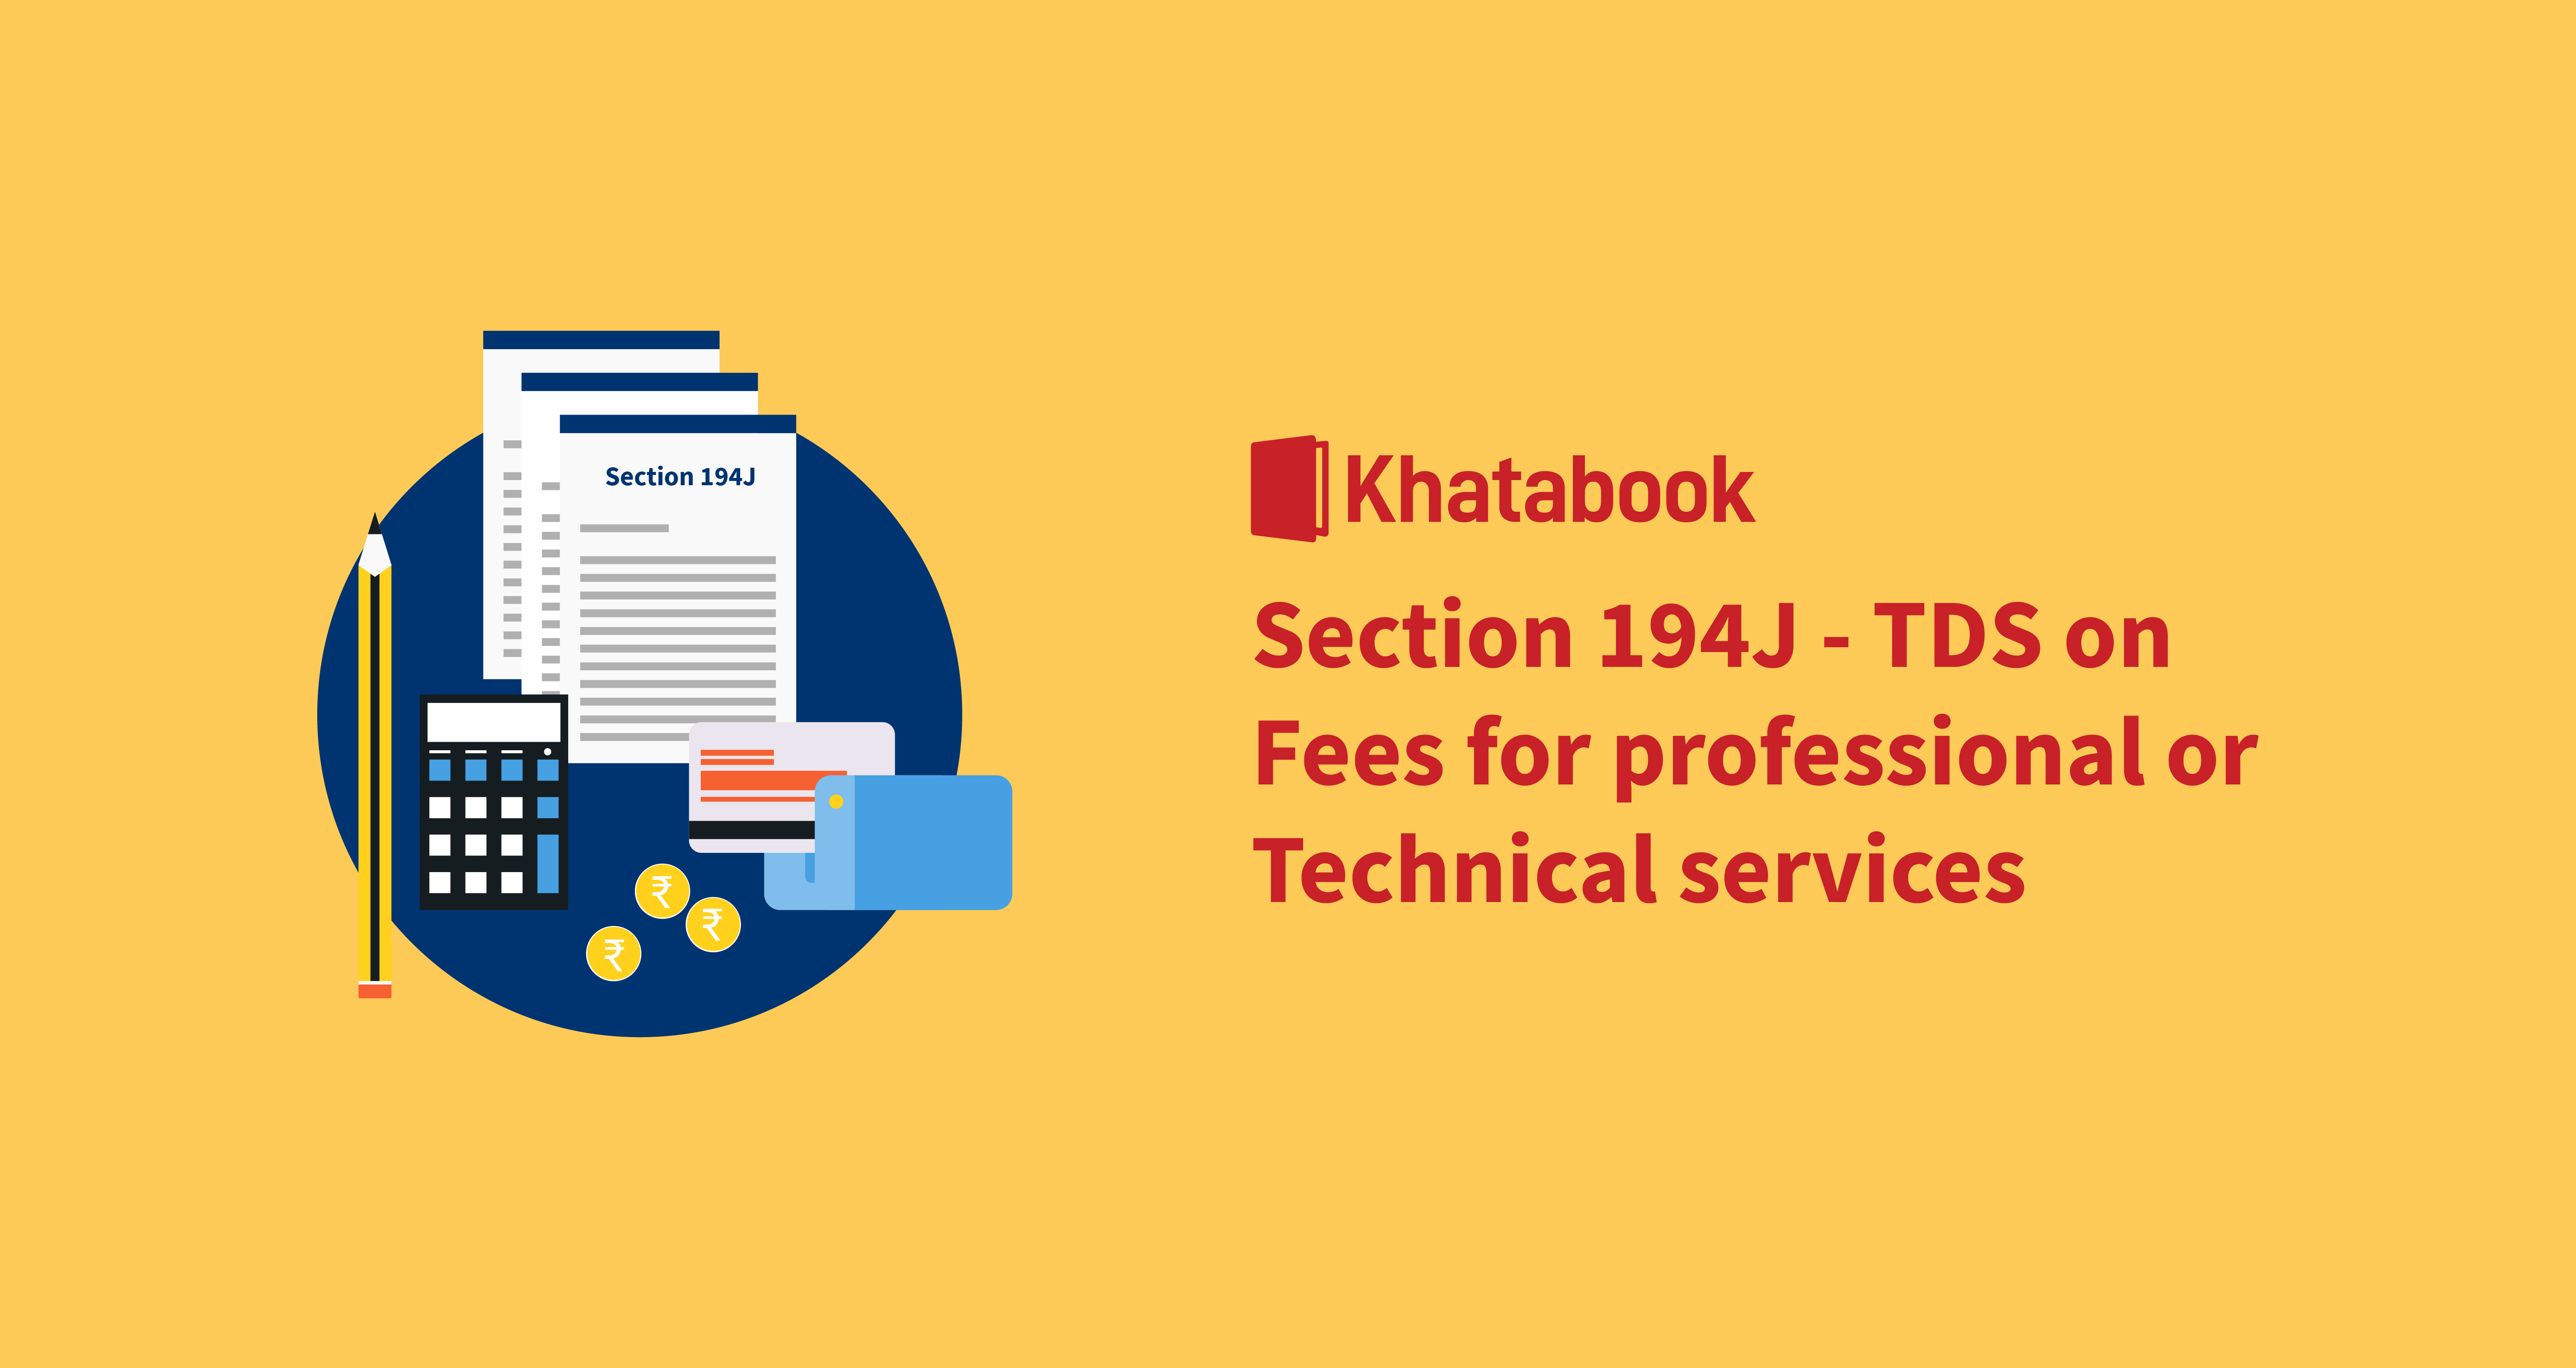 TDS on Fees for Professional or Technical Services under Section 194J